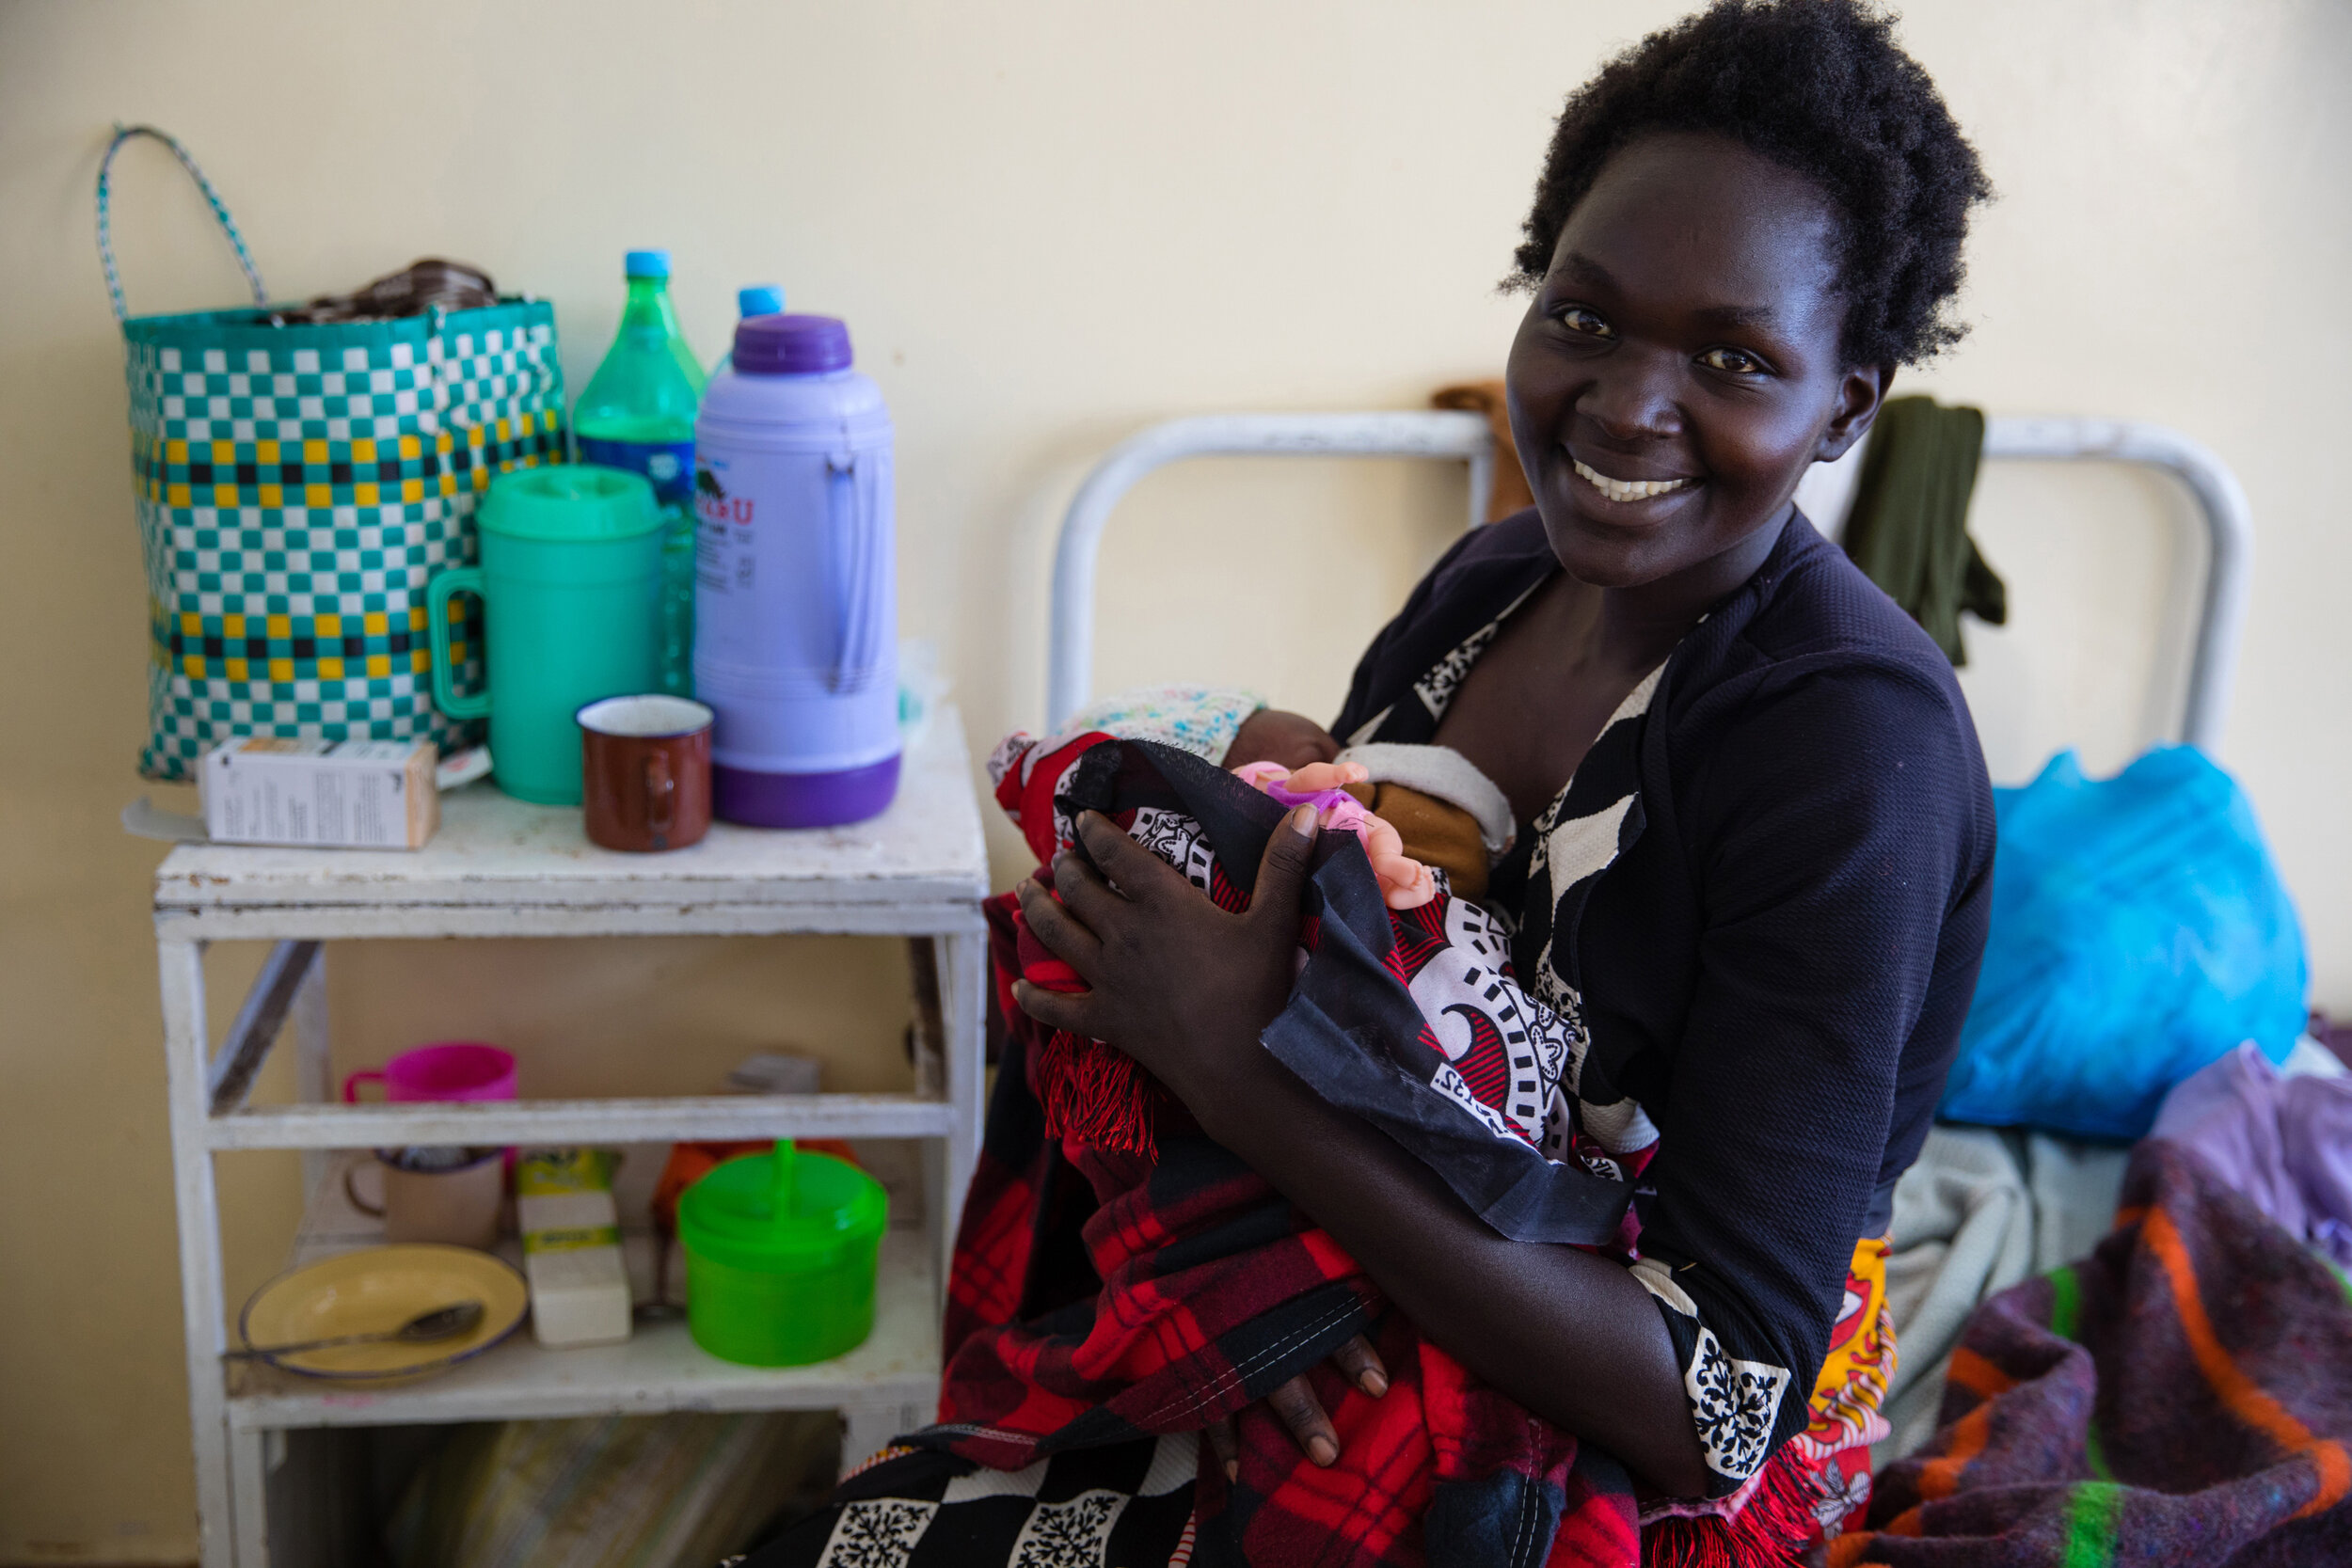 A happy Kenyan mother and her little one.